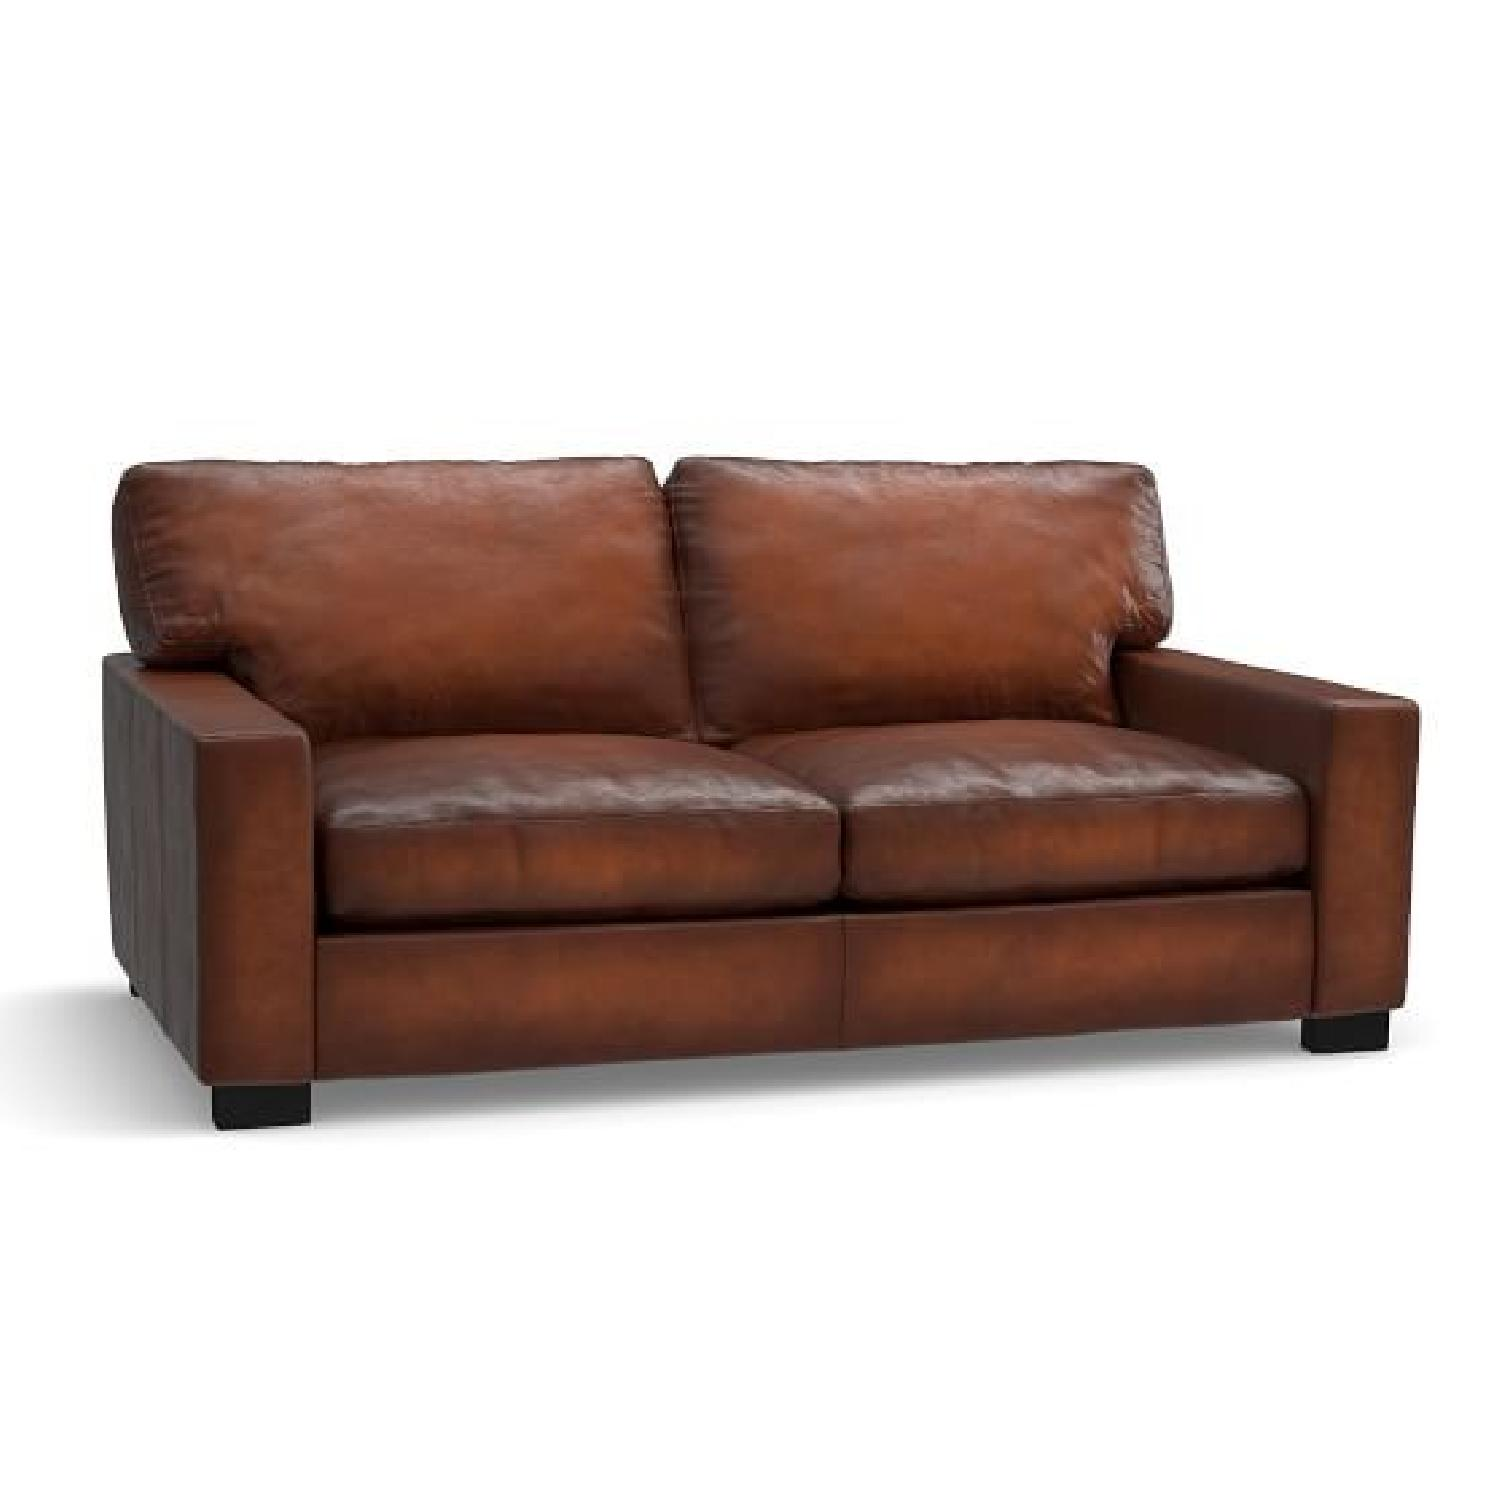 Pottery Barn Saddle Leather Love Seat AptDeco